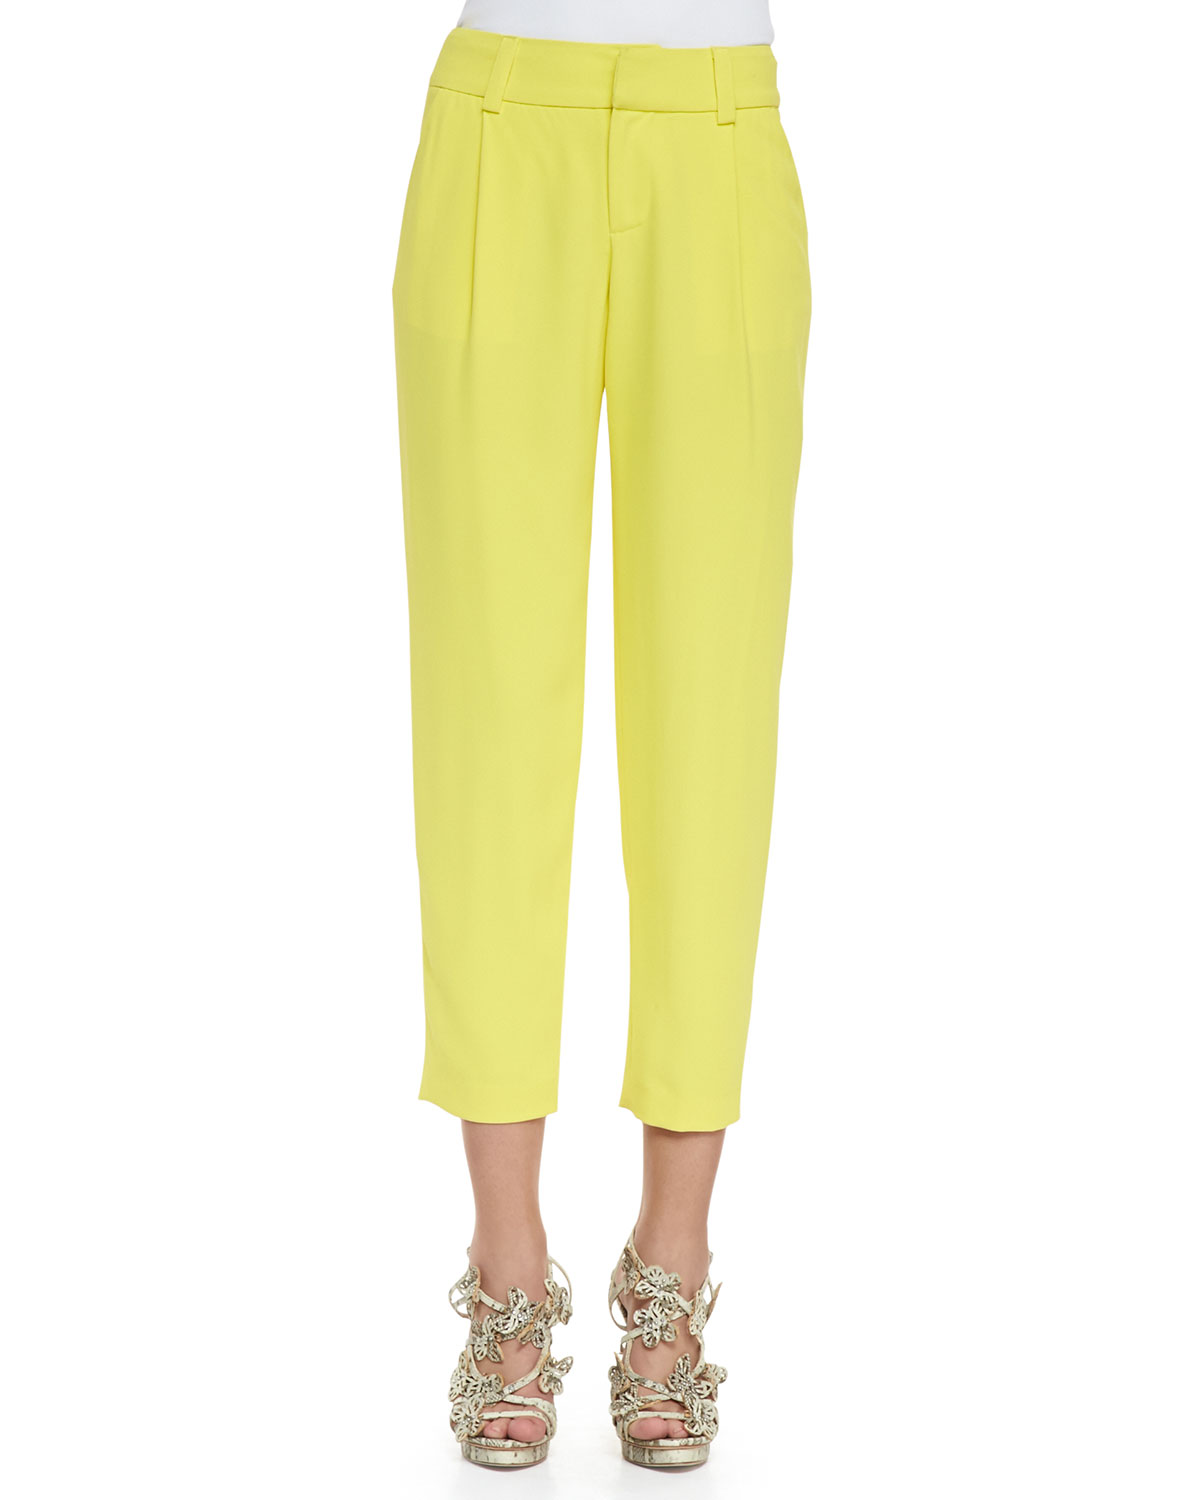 Womens Arthur Pleated Relaxed Pants   Alice + Olivia   Daffodil (4)